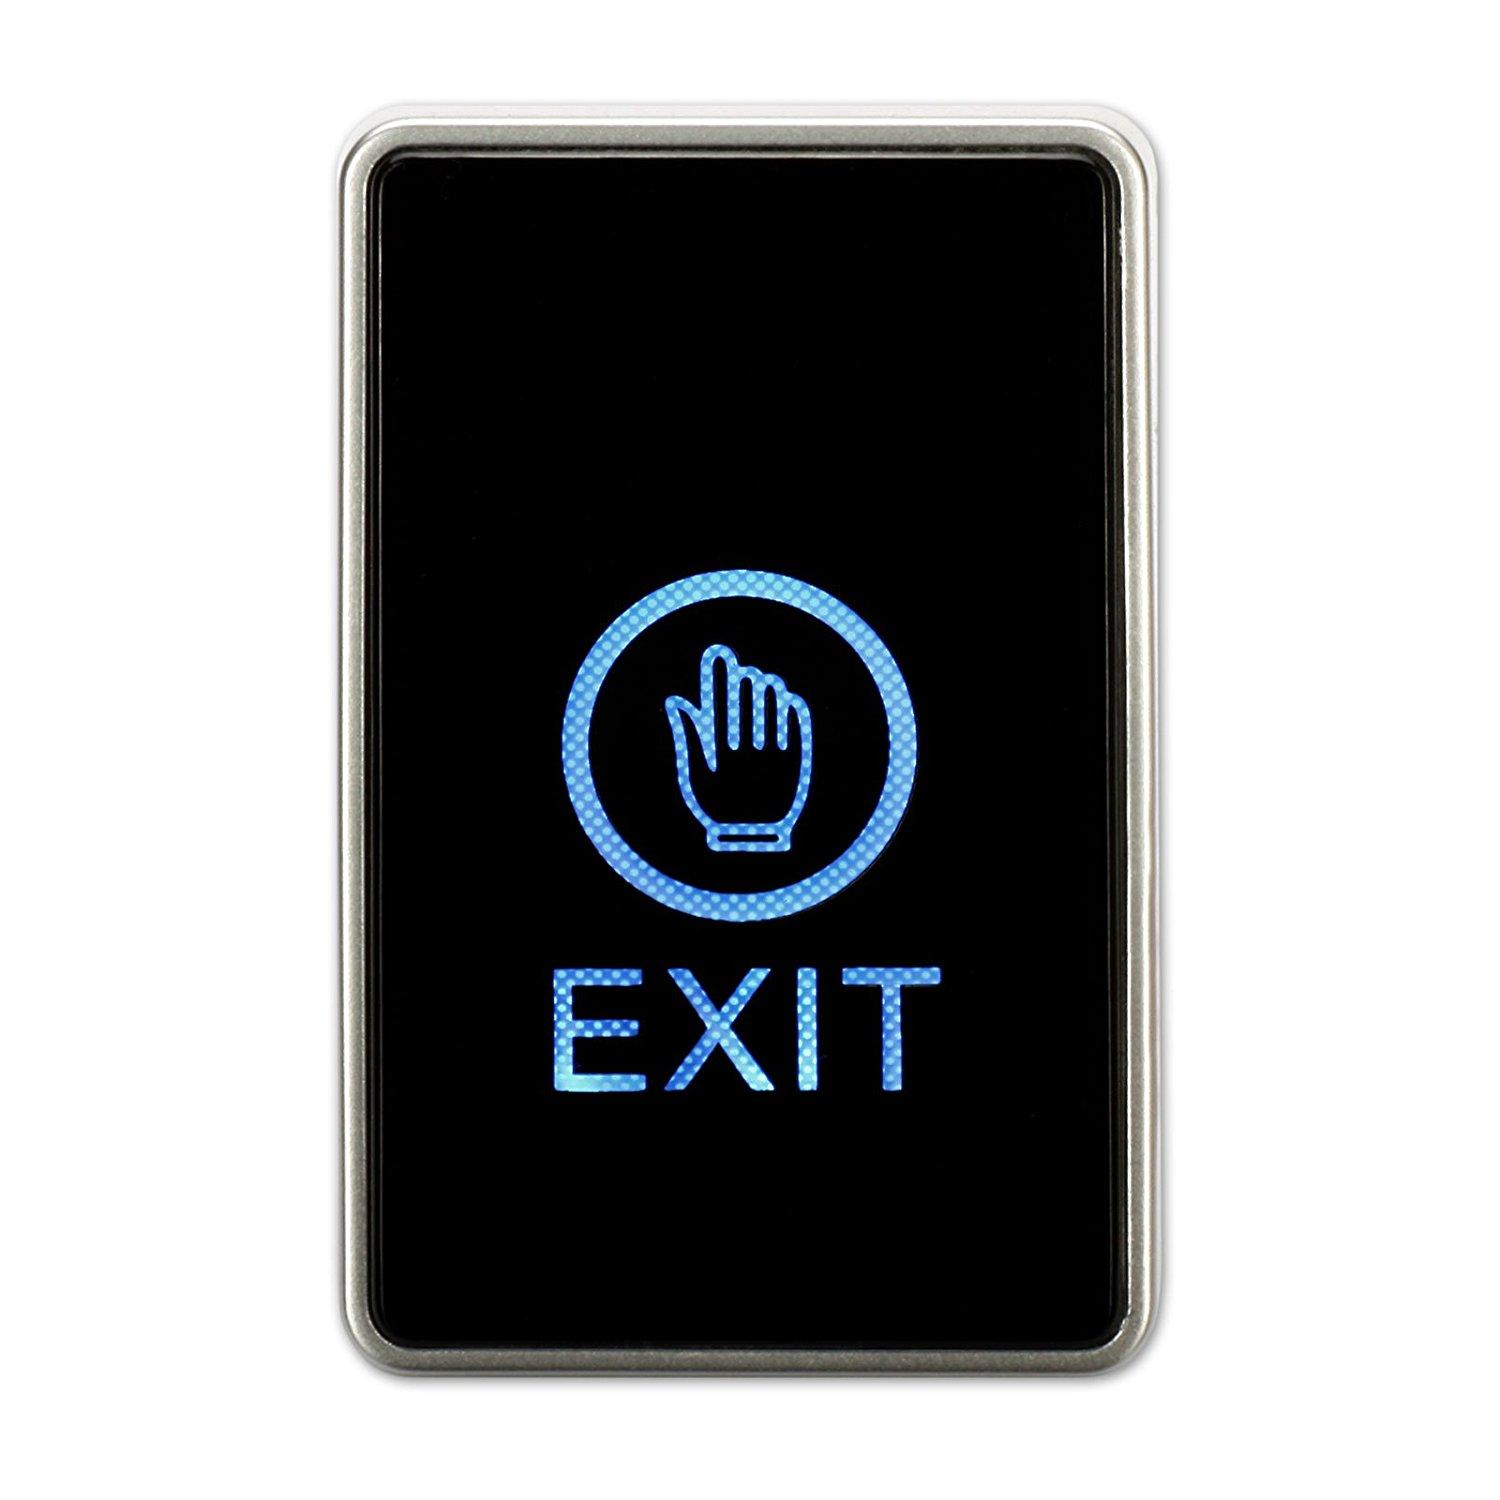 Touch Screen Exit Button For Door Access Control With Led 2